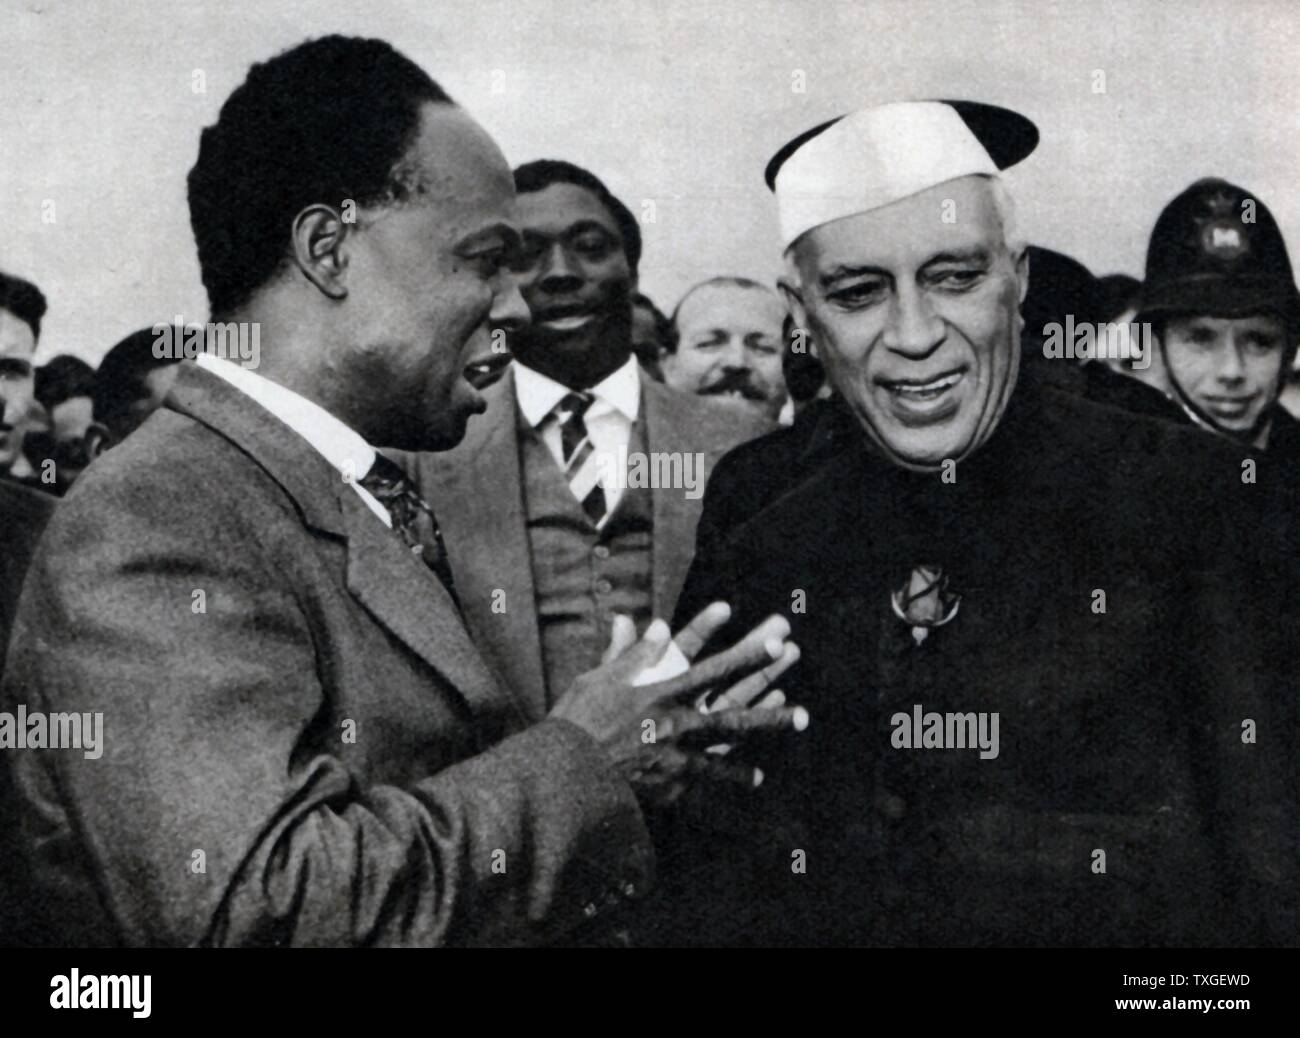 Photograph of Prime Minister Jawaharlal Nehru and Prime Minister Kwame Nkrumah during the Commonwealth Conference. Dated 1960 - Stock Image